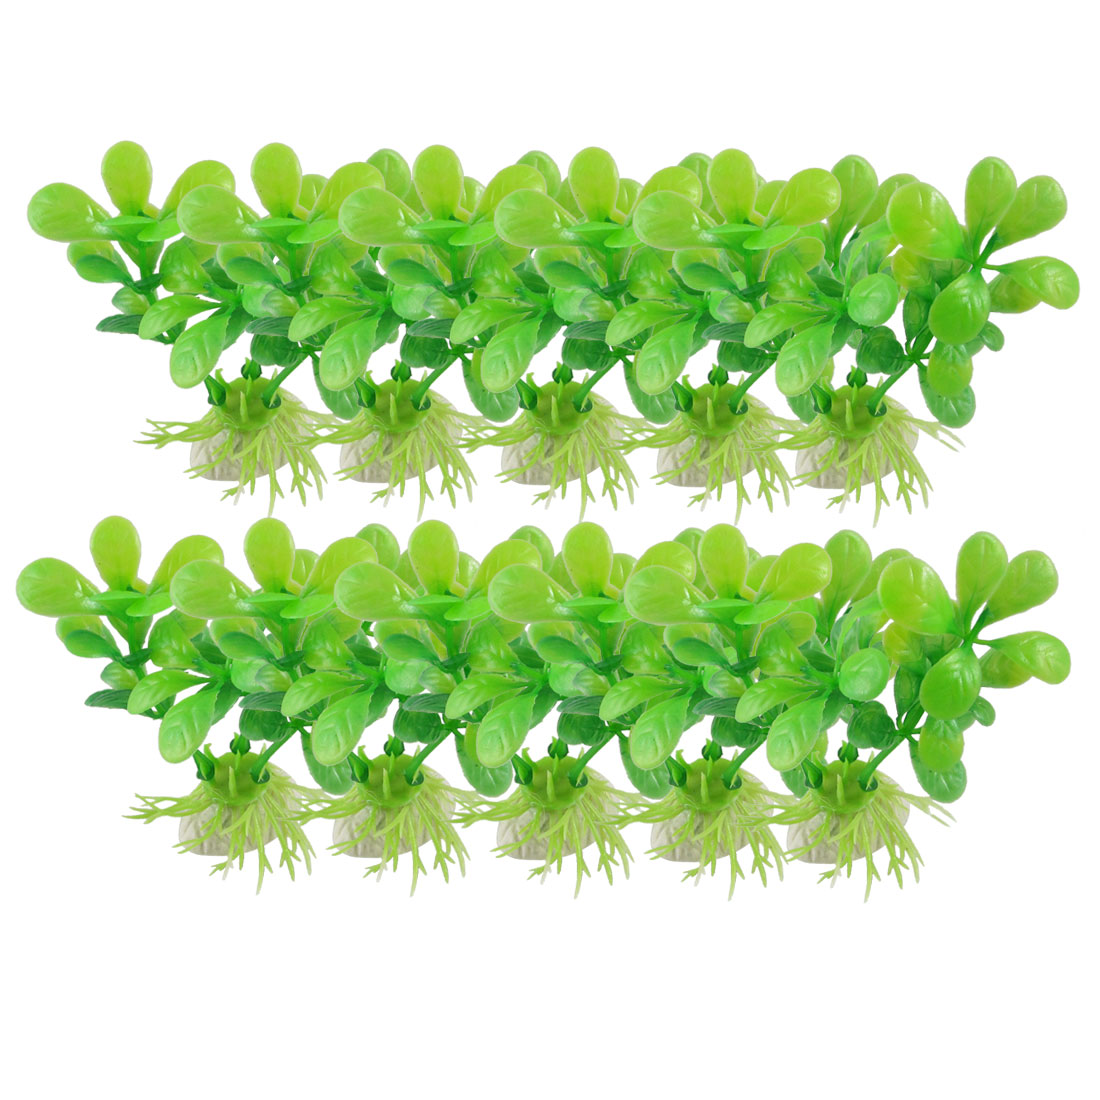 10 Pcs Aquarium Fish Tank Green Plastic Leaves Aquascaping Plant 3.3""